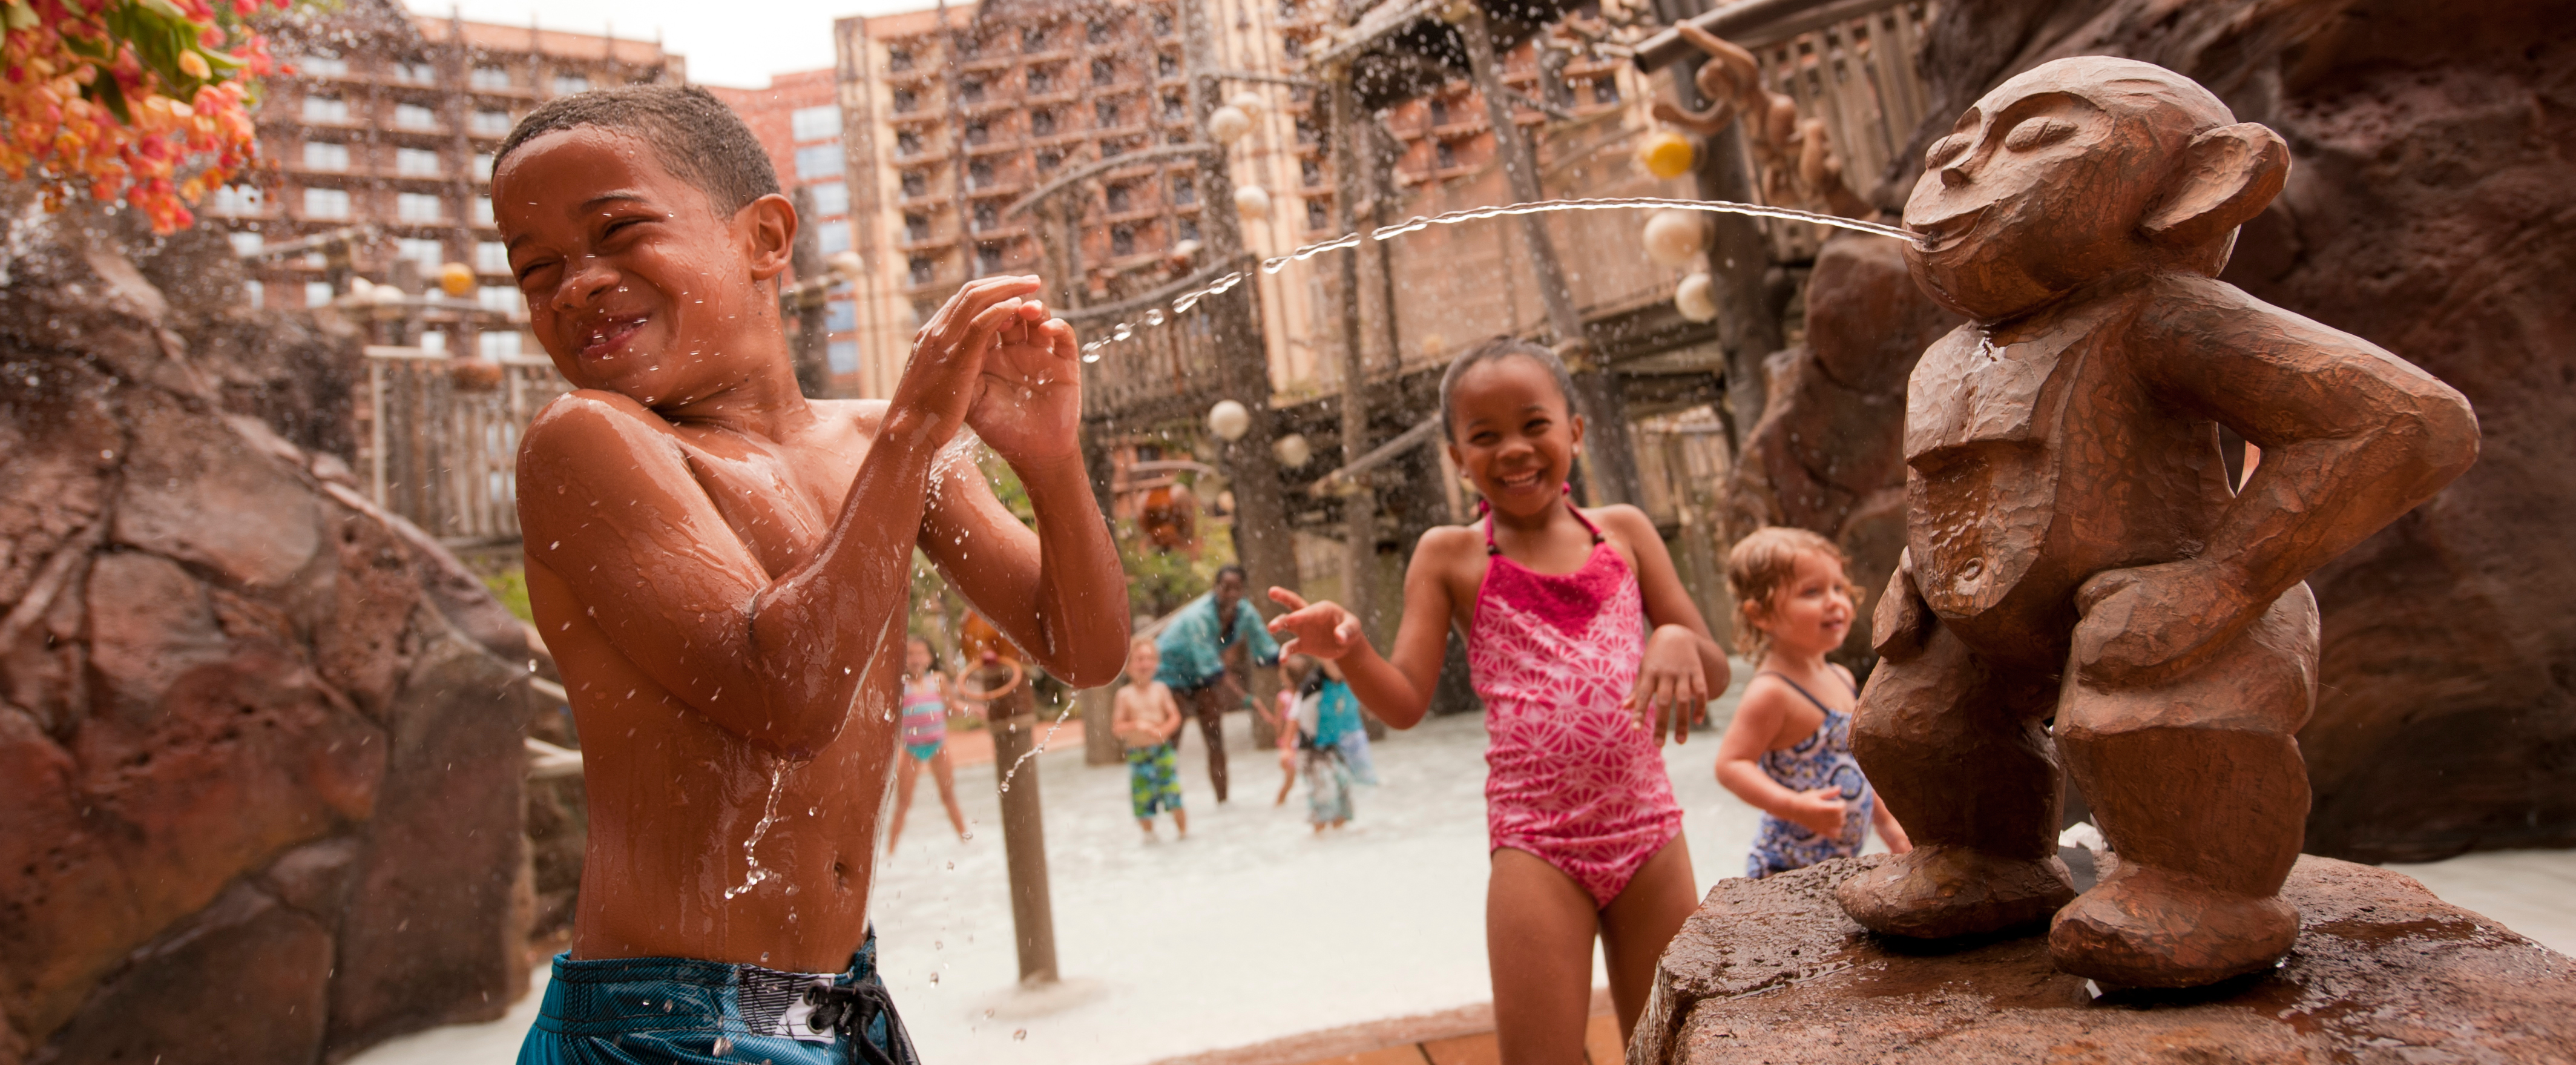 Kids play at Menehune Bridge in the Aulani Resort pool area